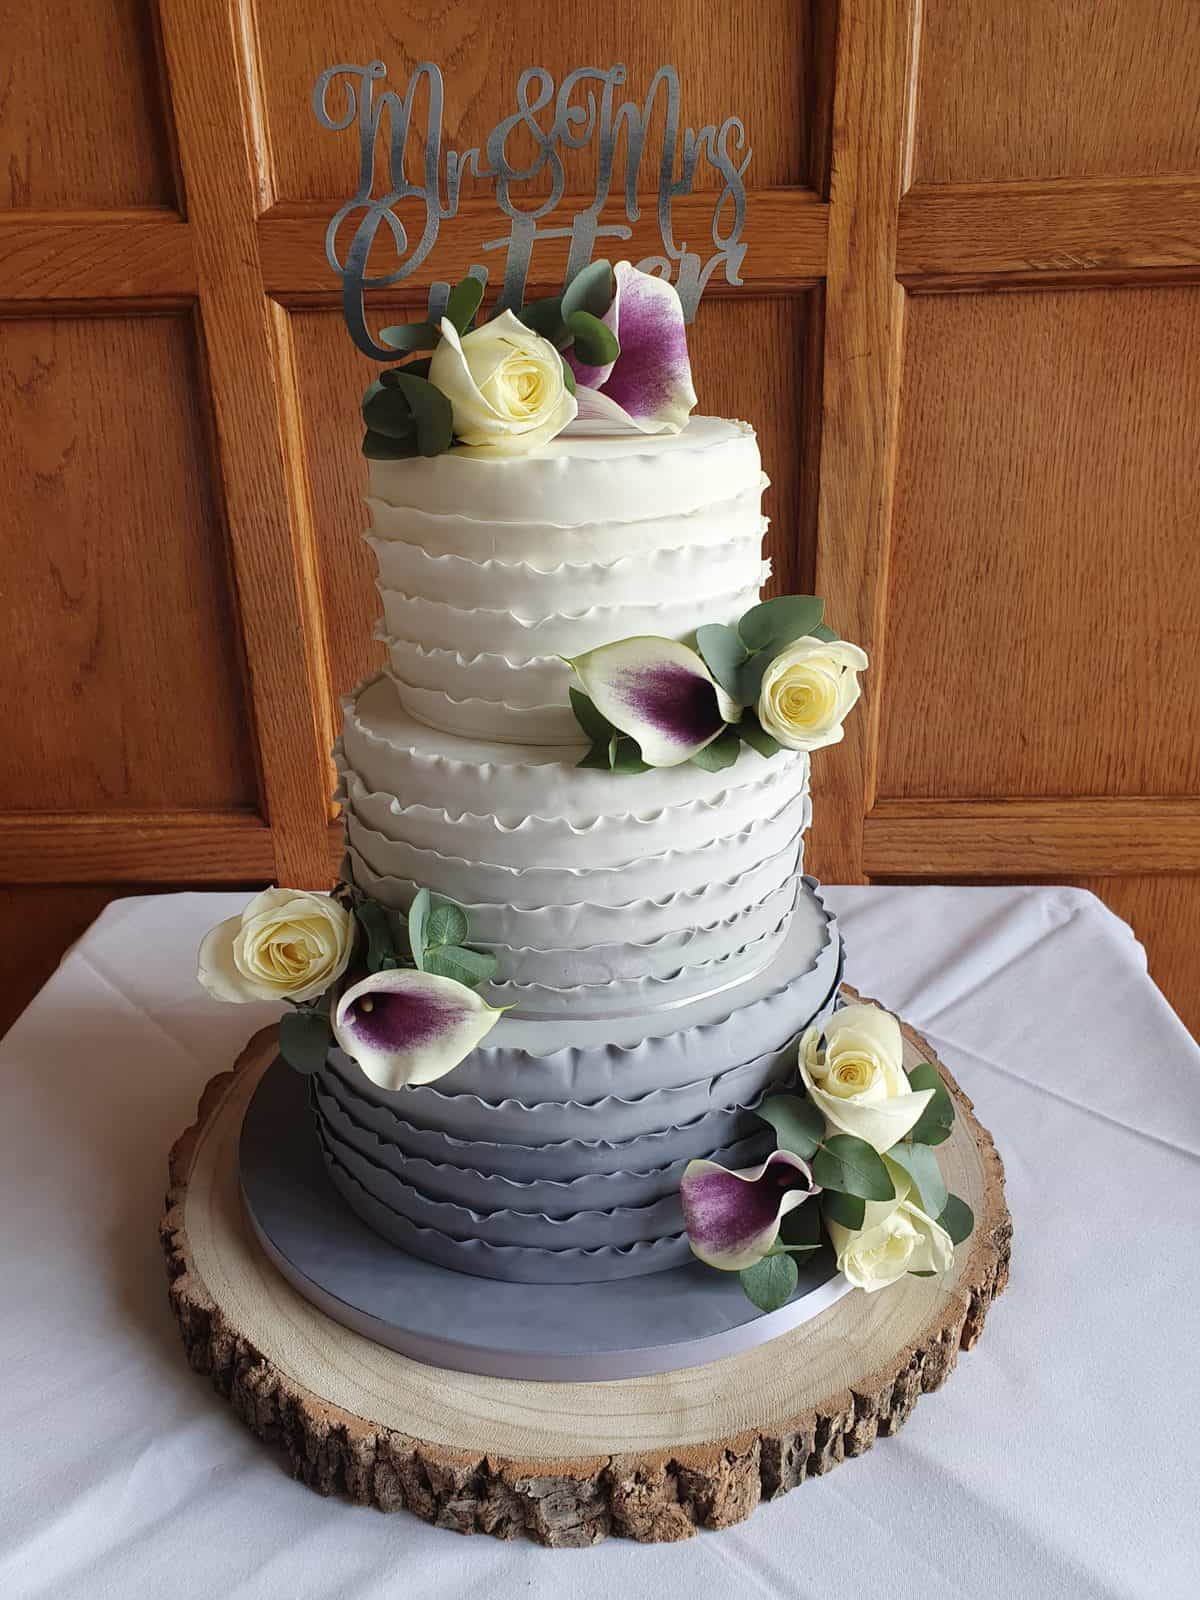 Bluebell 4 tier cake